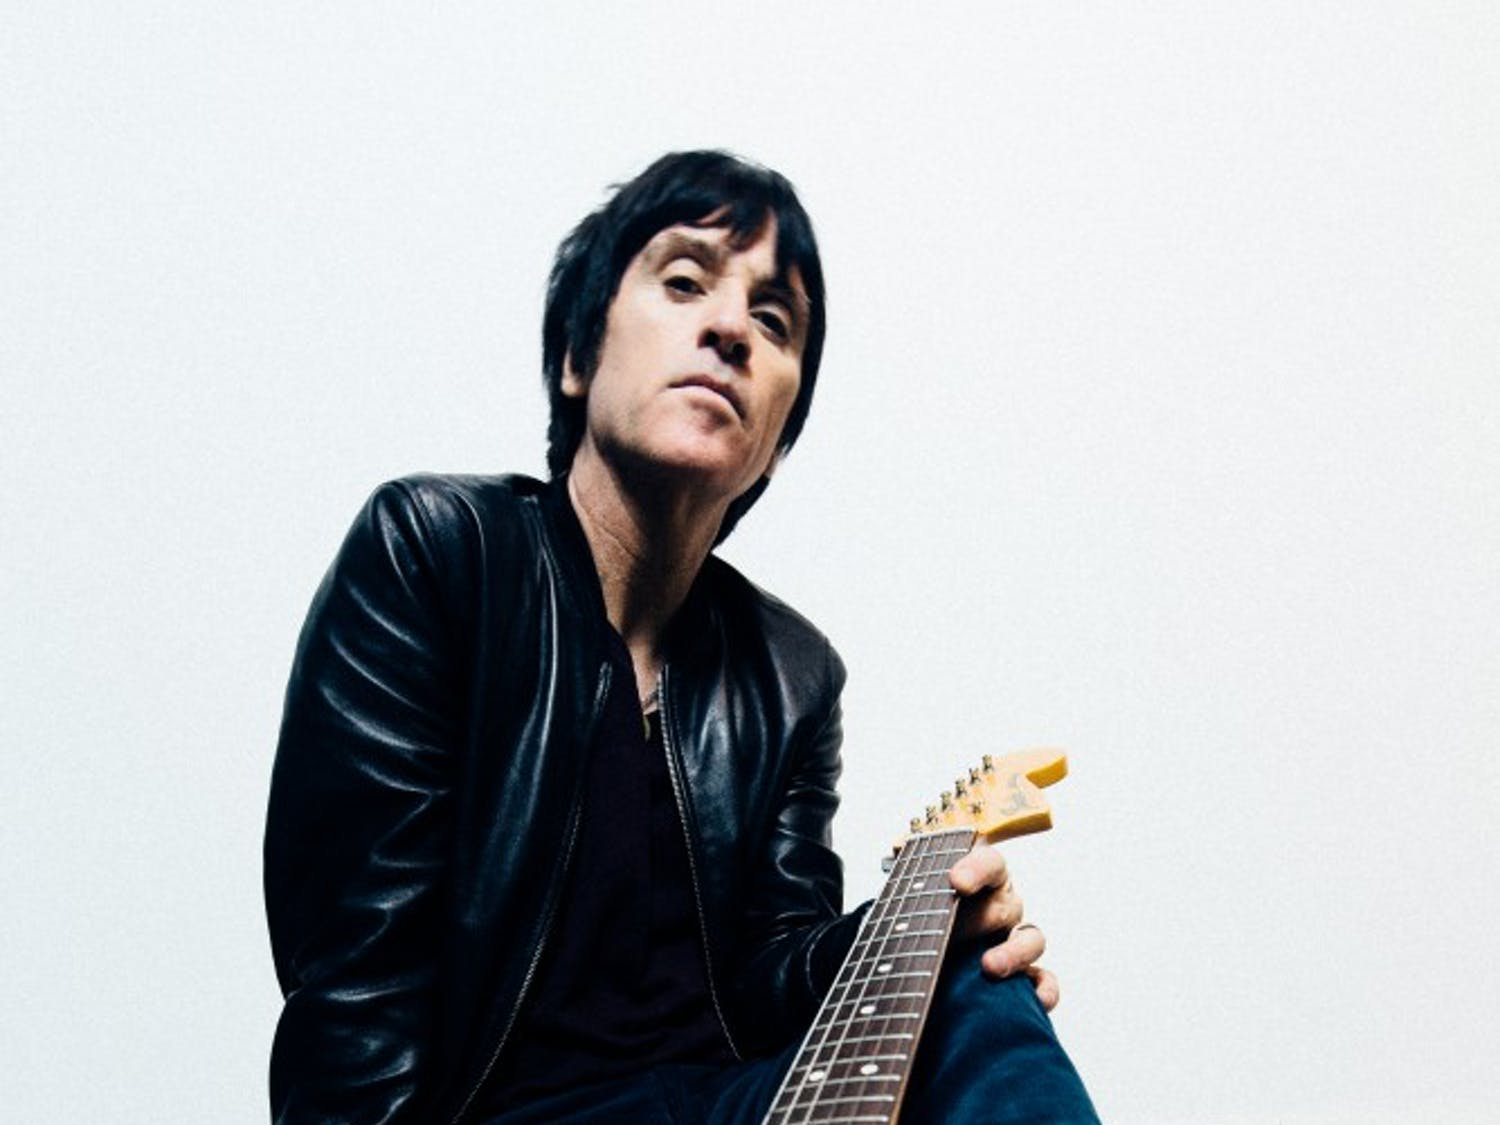 """From The Smiths to Modest Mouse, Johnny Marr has left a lasting impression in popular music. """"I feel an almost weird responsibility to honor the guitar within indie rock,"""" Marr said. Currently on tour in support of his third solo album, """"Call the Comet,"""" The Spectrum spokewith the legendary guitarist concerning his past, present and future, as well as his influences."""